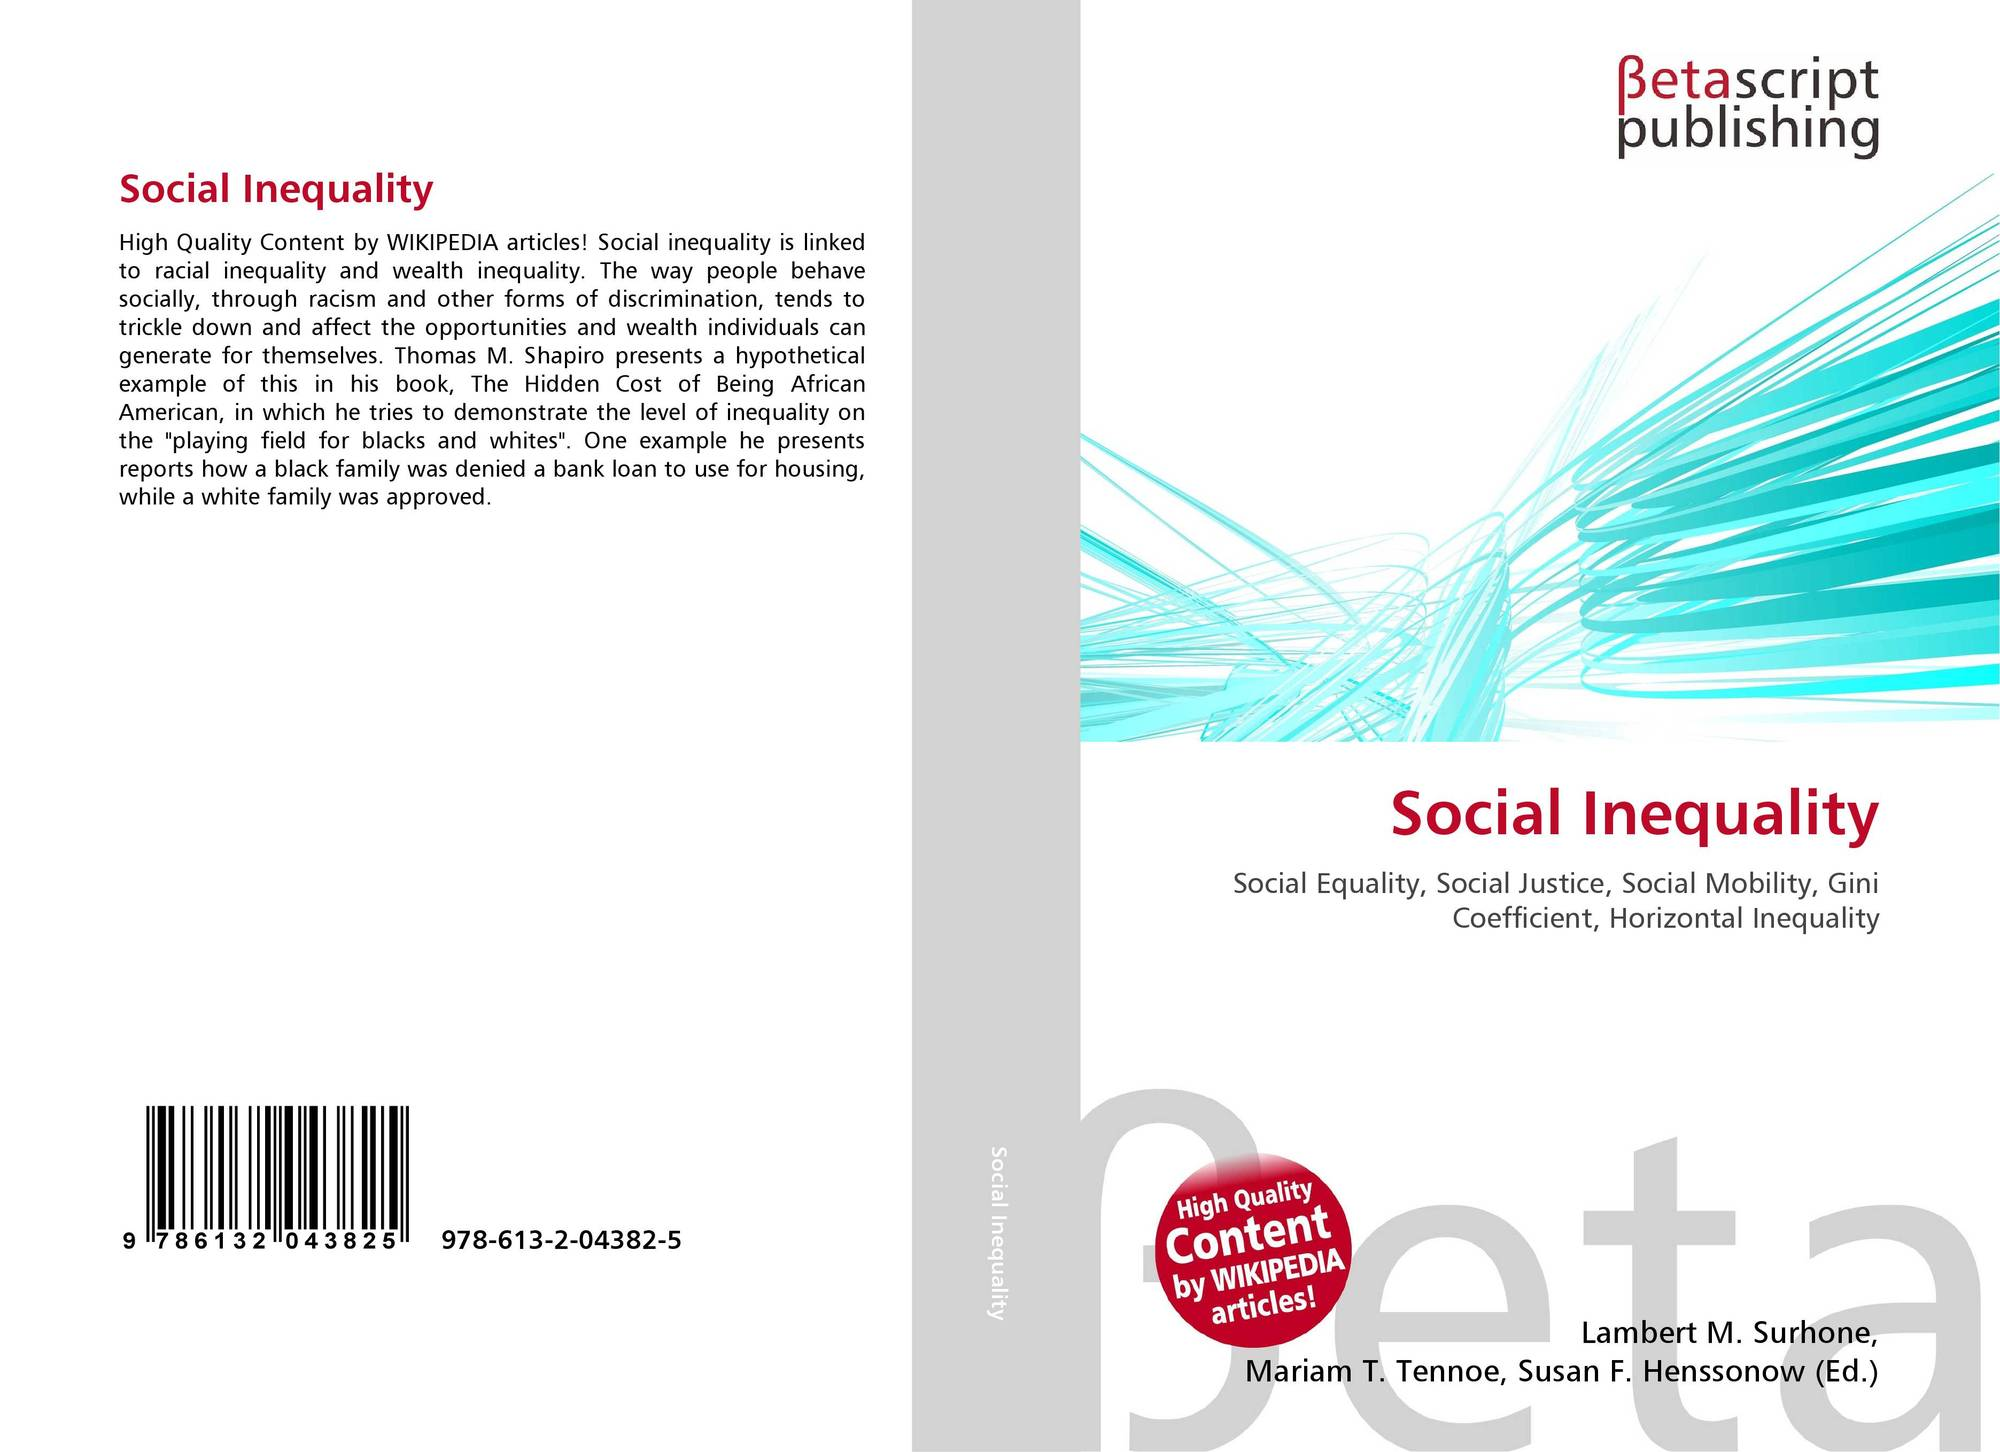 an analysis of social inequality in modern society - social conflict and inequality the social conflict paradigm is a theory based on society being a complex system characterized by inequality and conflict that generate social change personal life experiences dictate me to believe this theory is true.